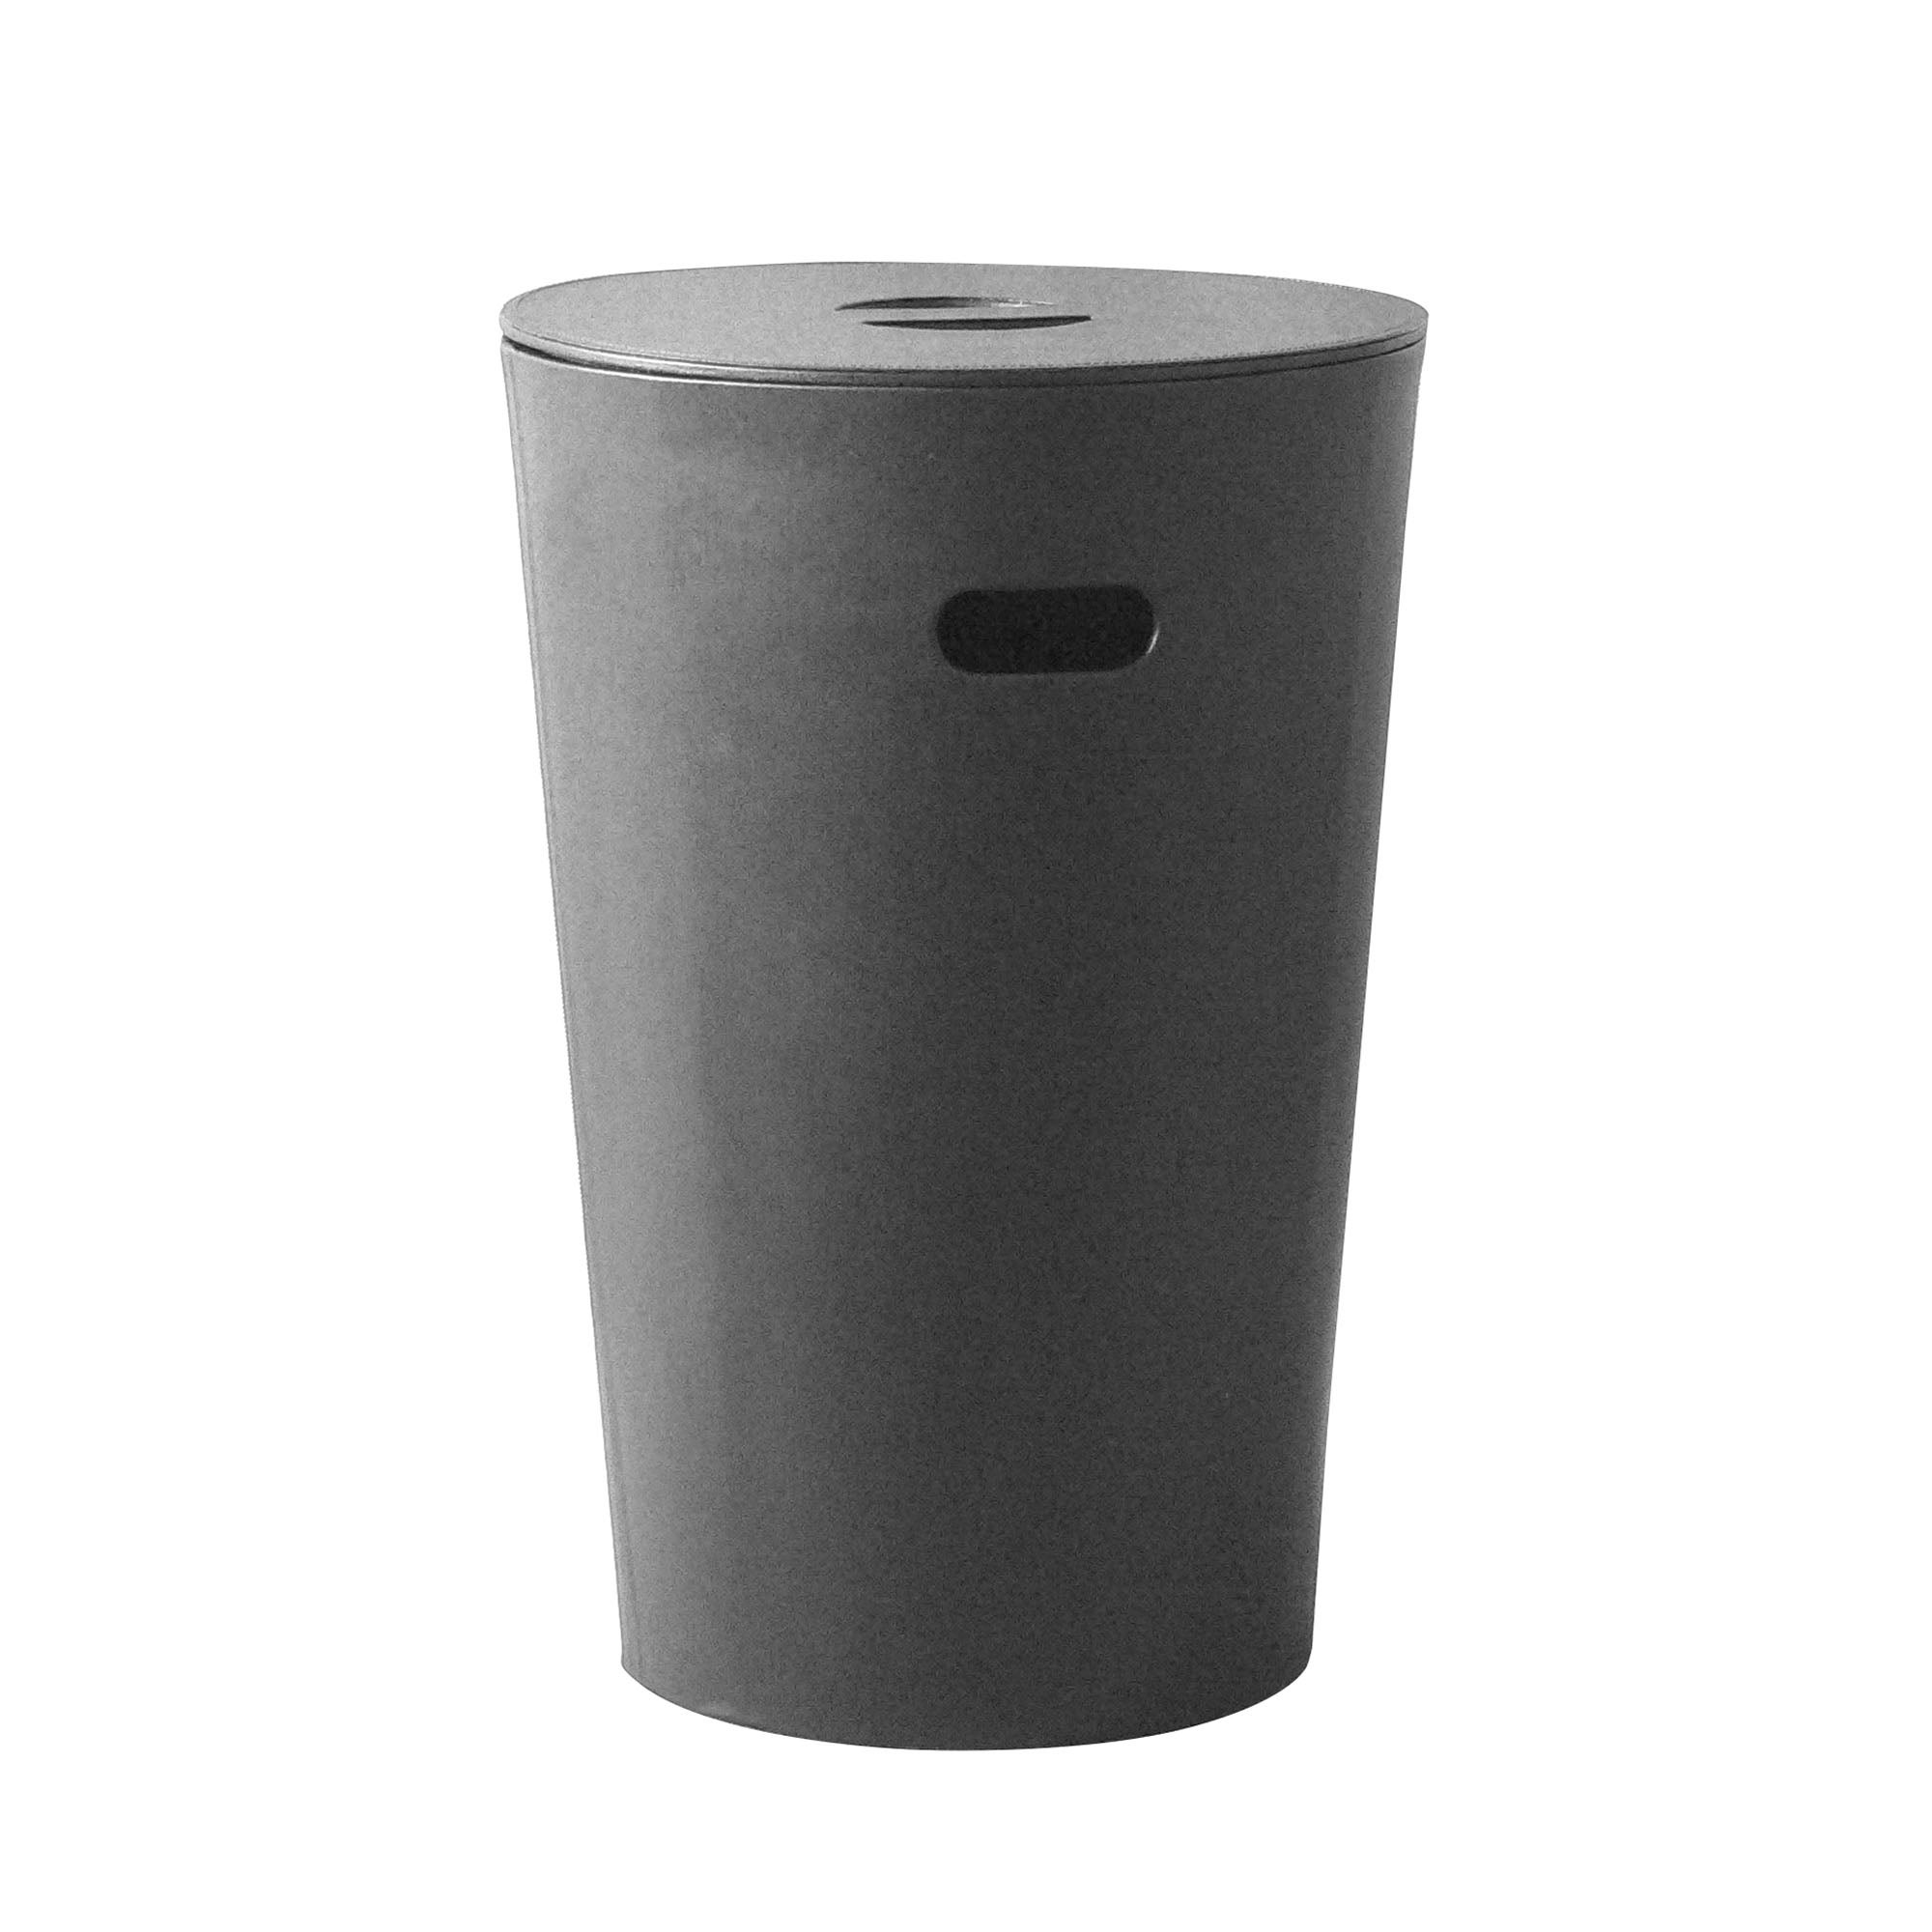 Faux Leather Round Laundry Bin